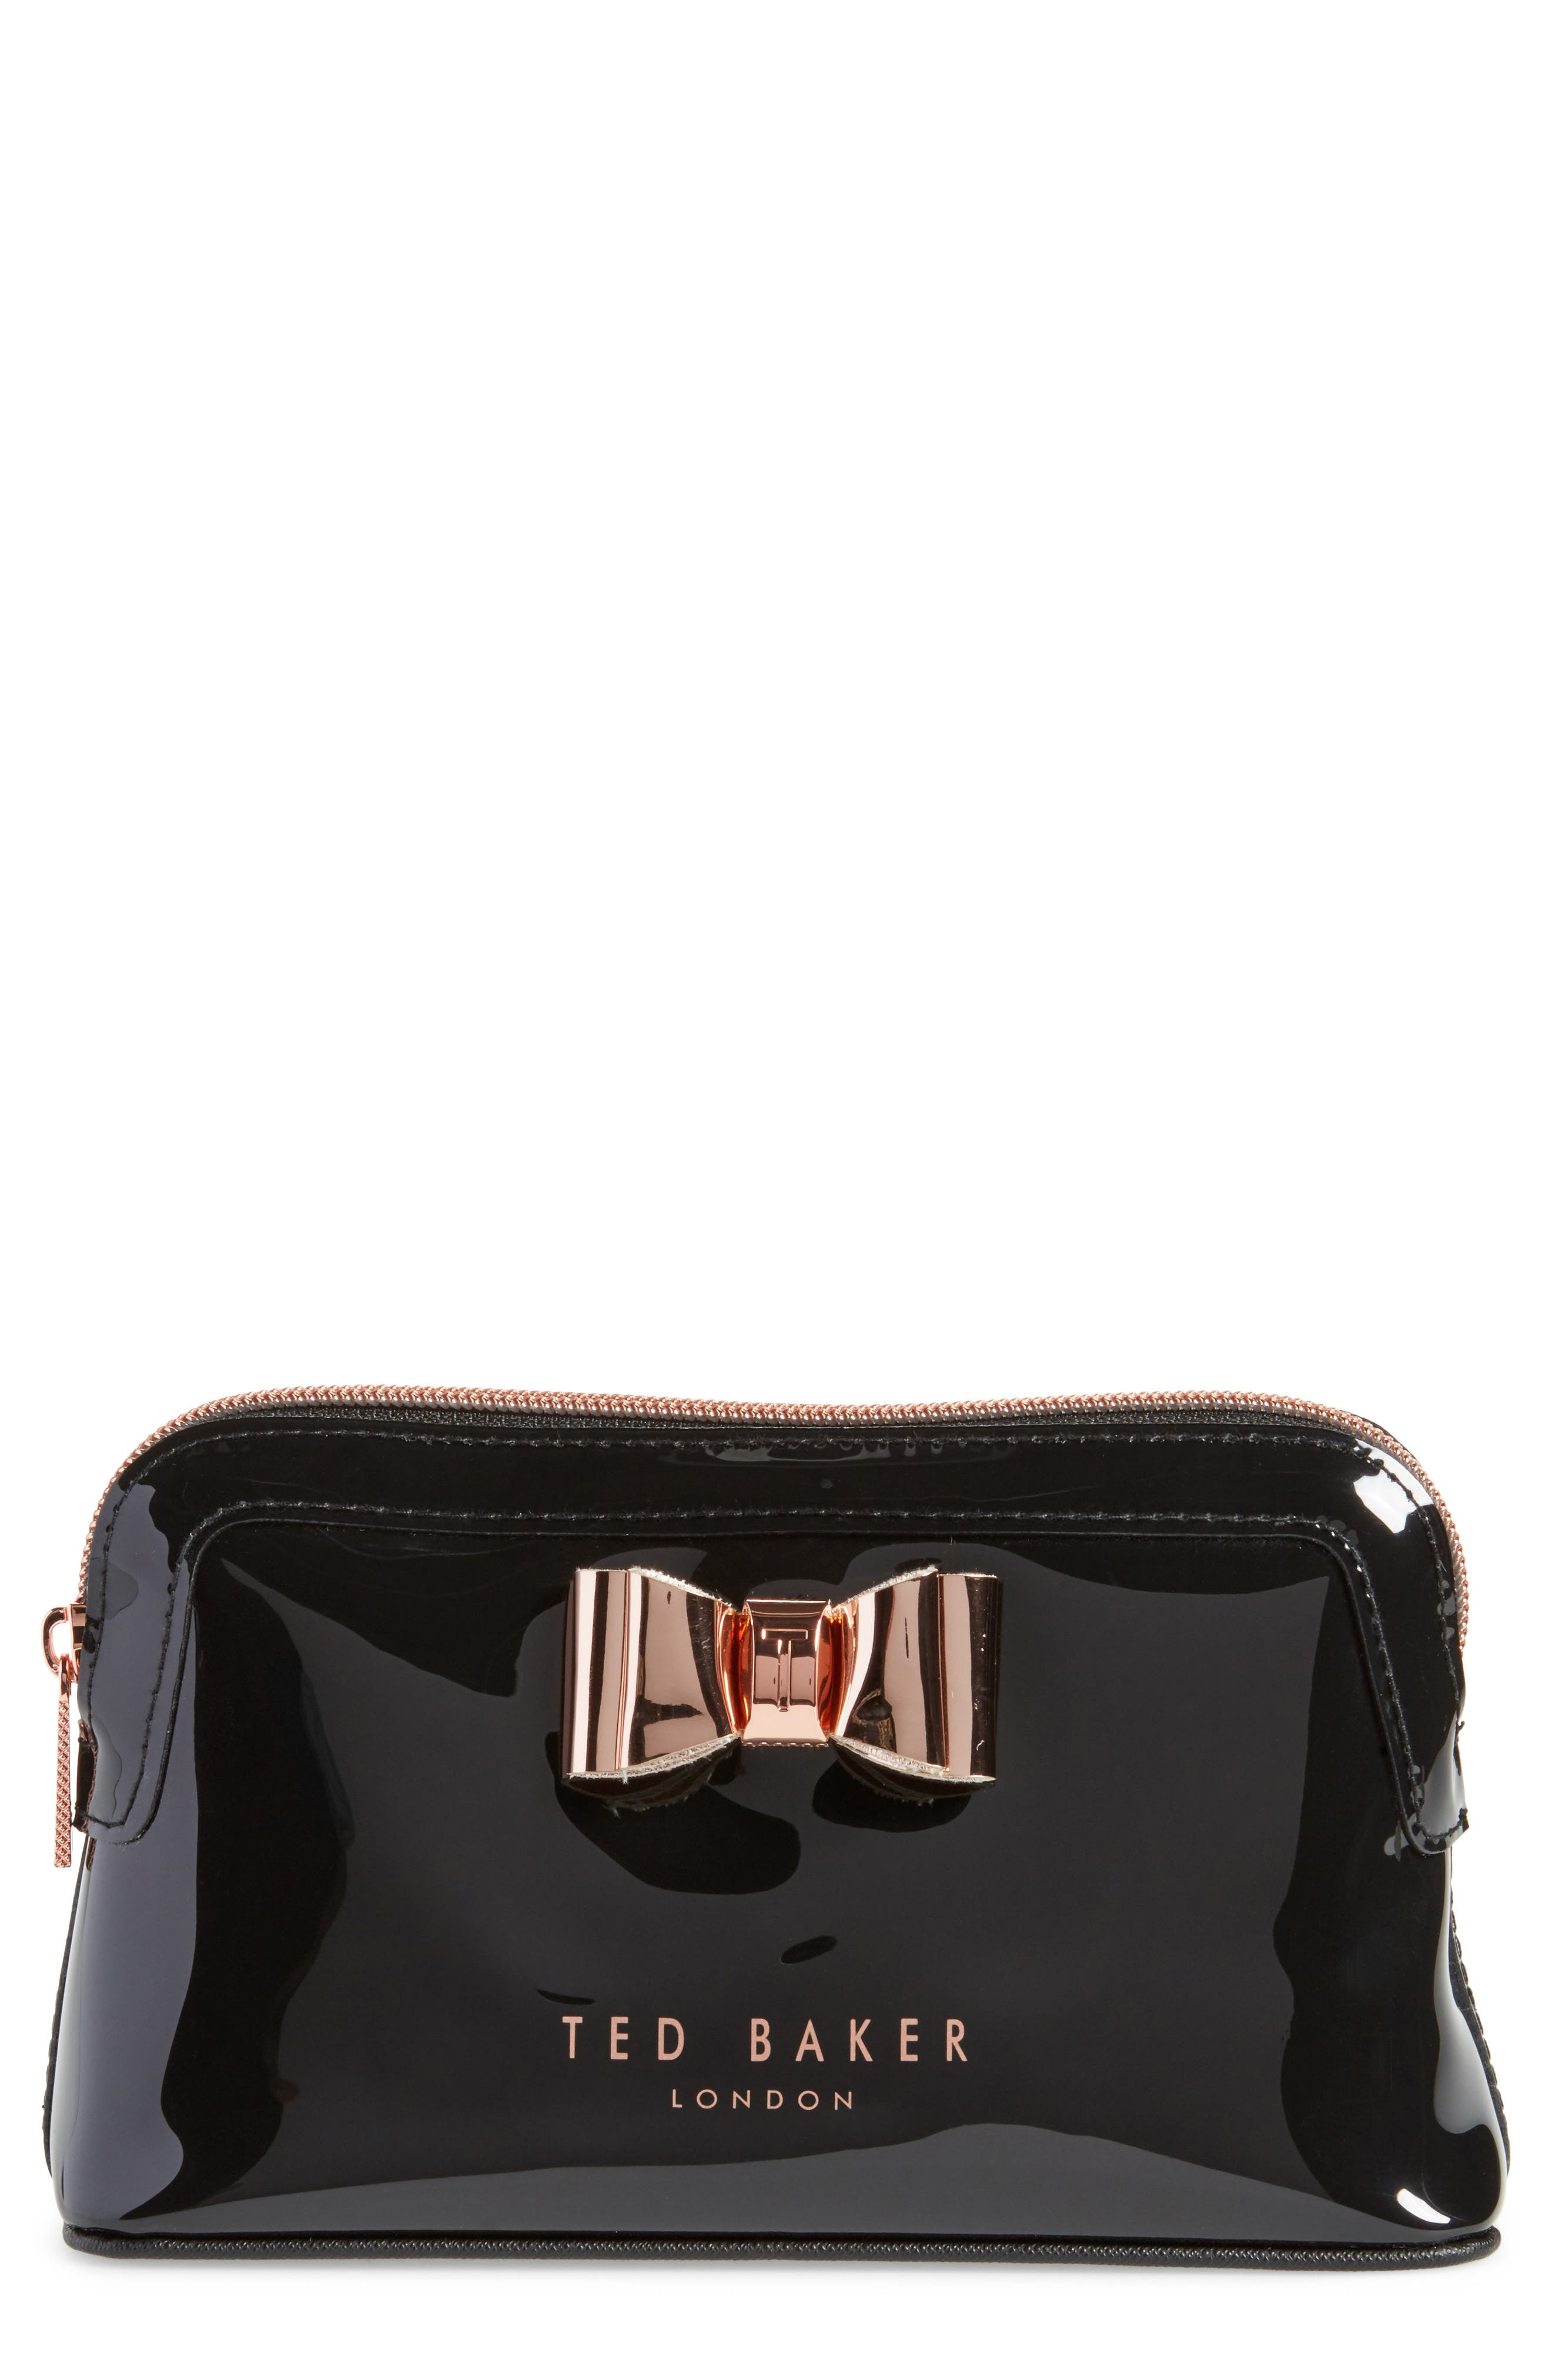 Alternate Image 1 Selected - Ted Baker London Melynda Cosmetics Case